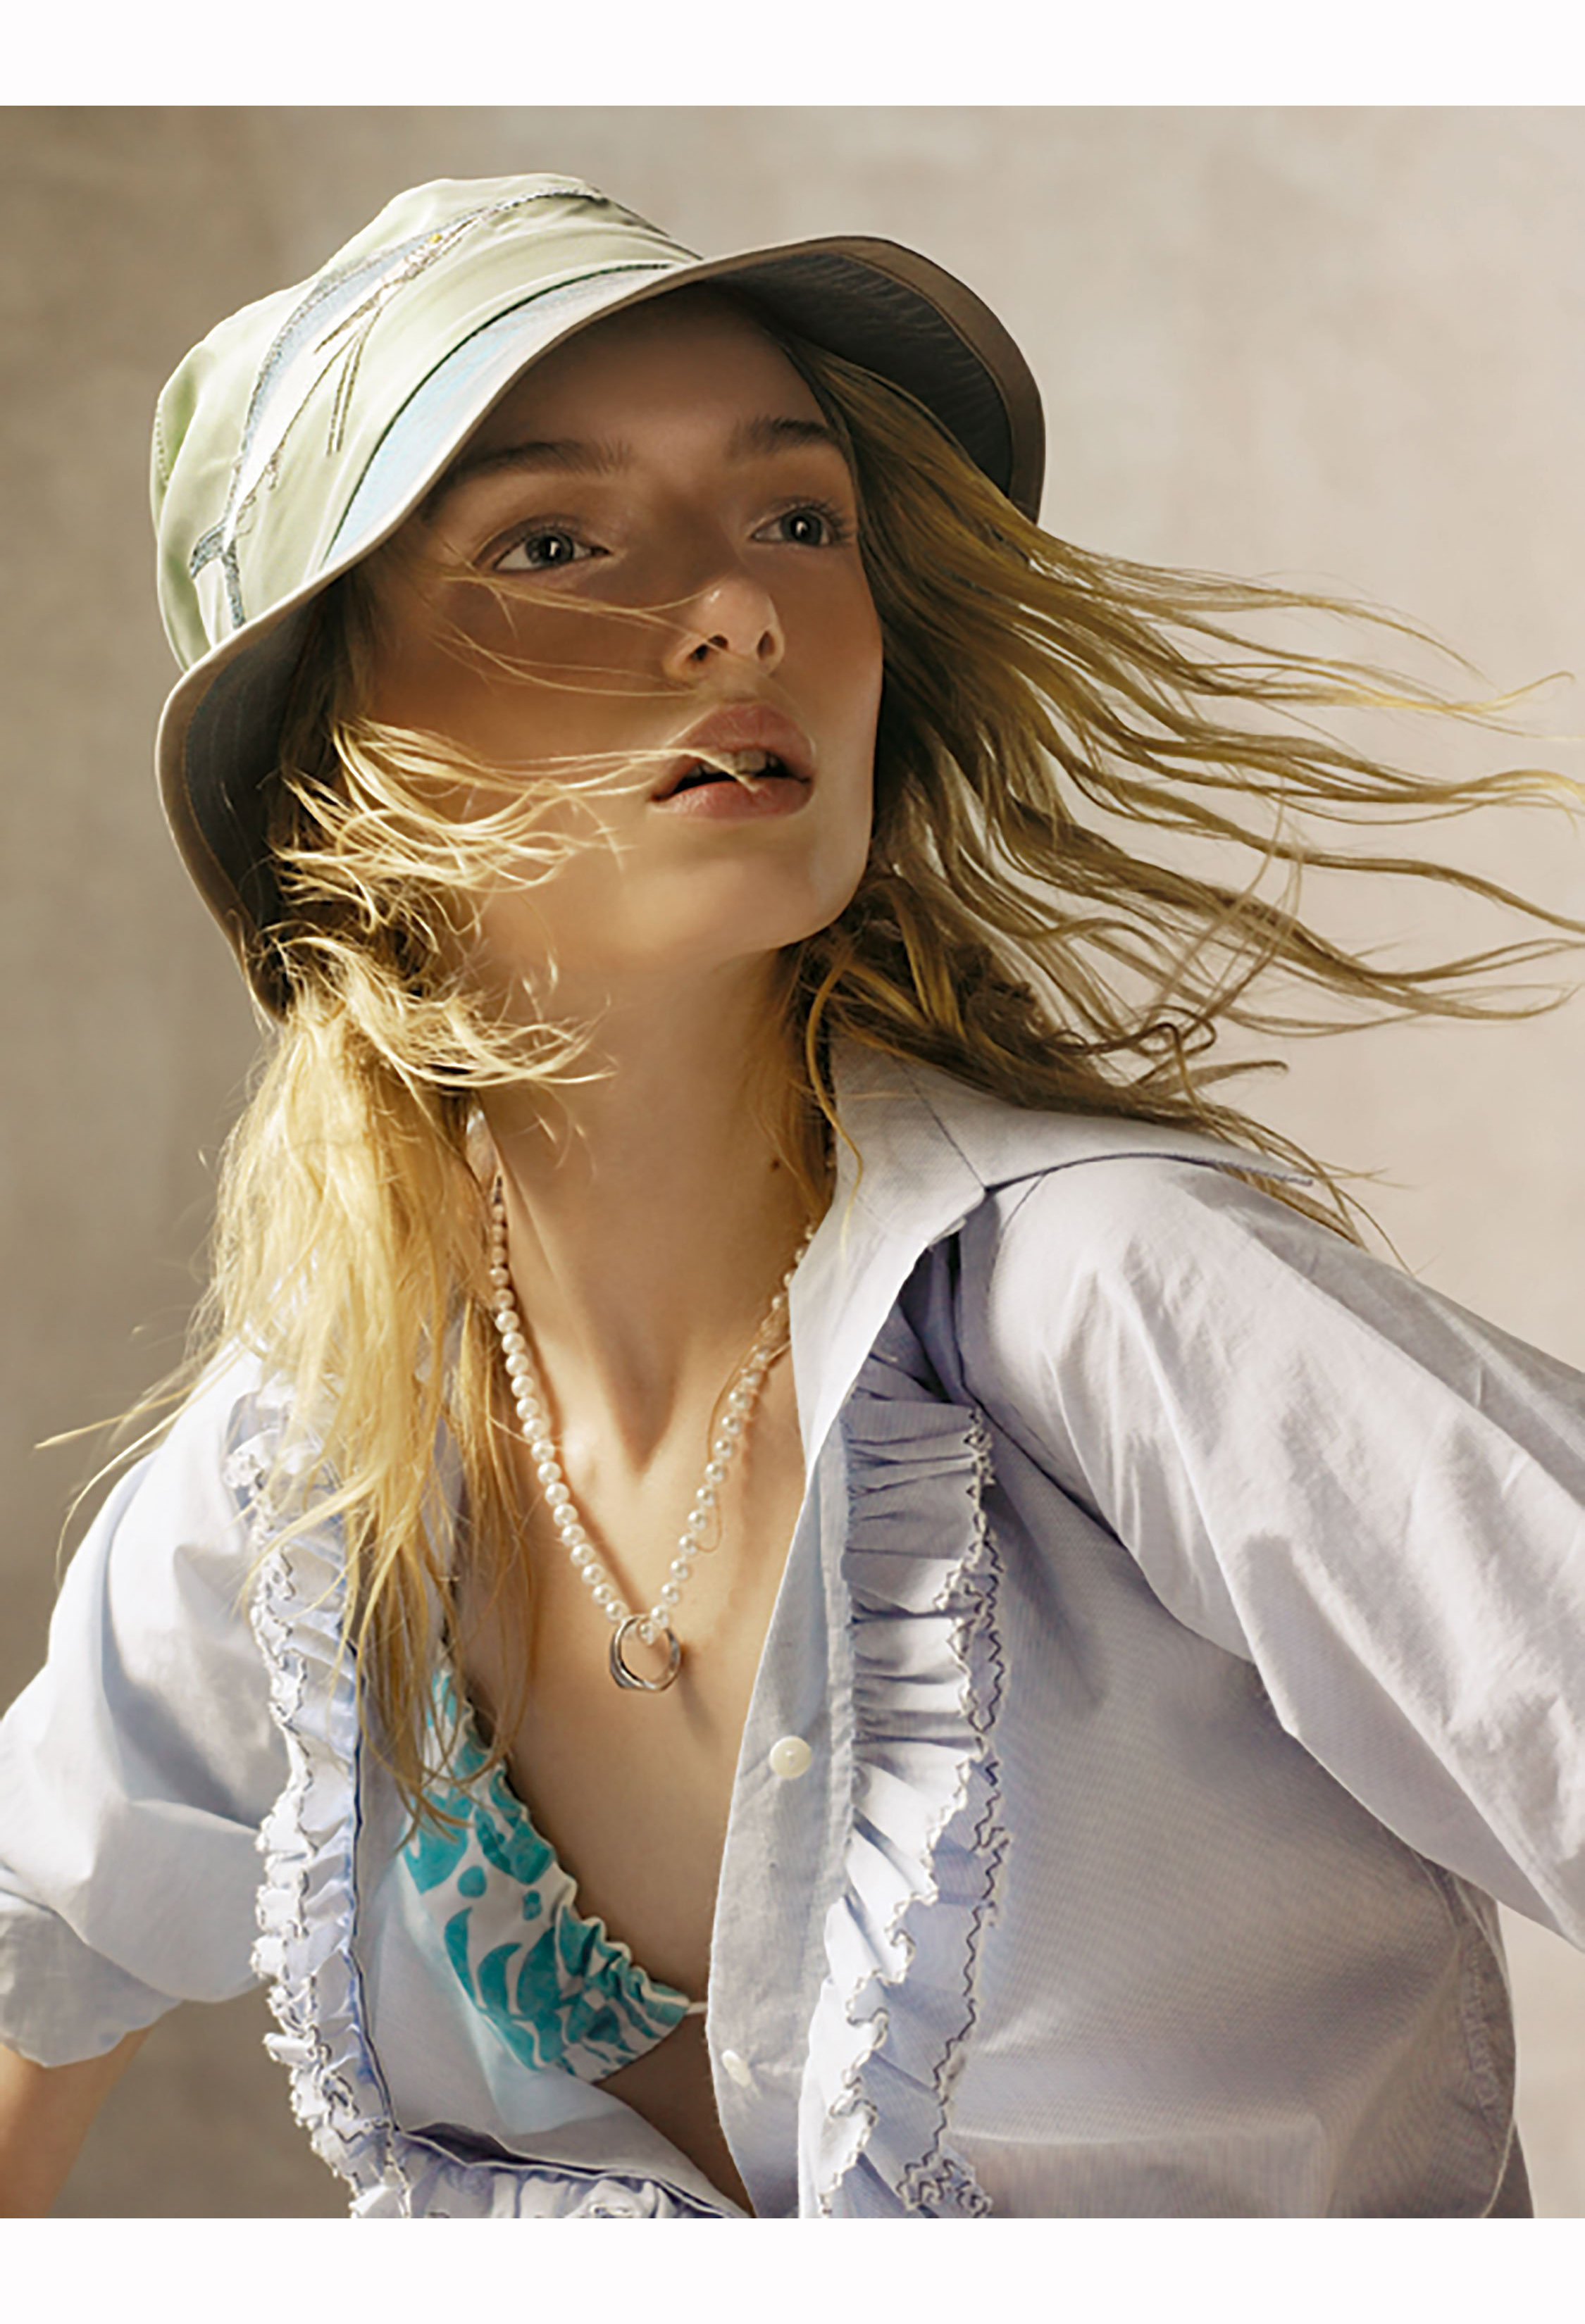 Lily Donaldson Top 10 Facts You Need to Know